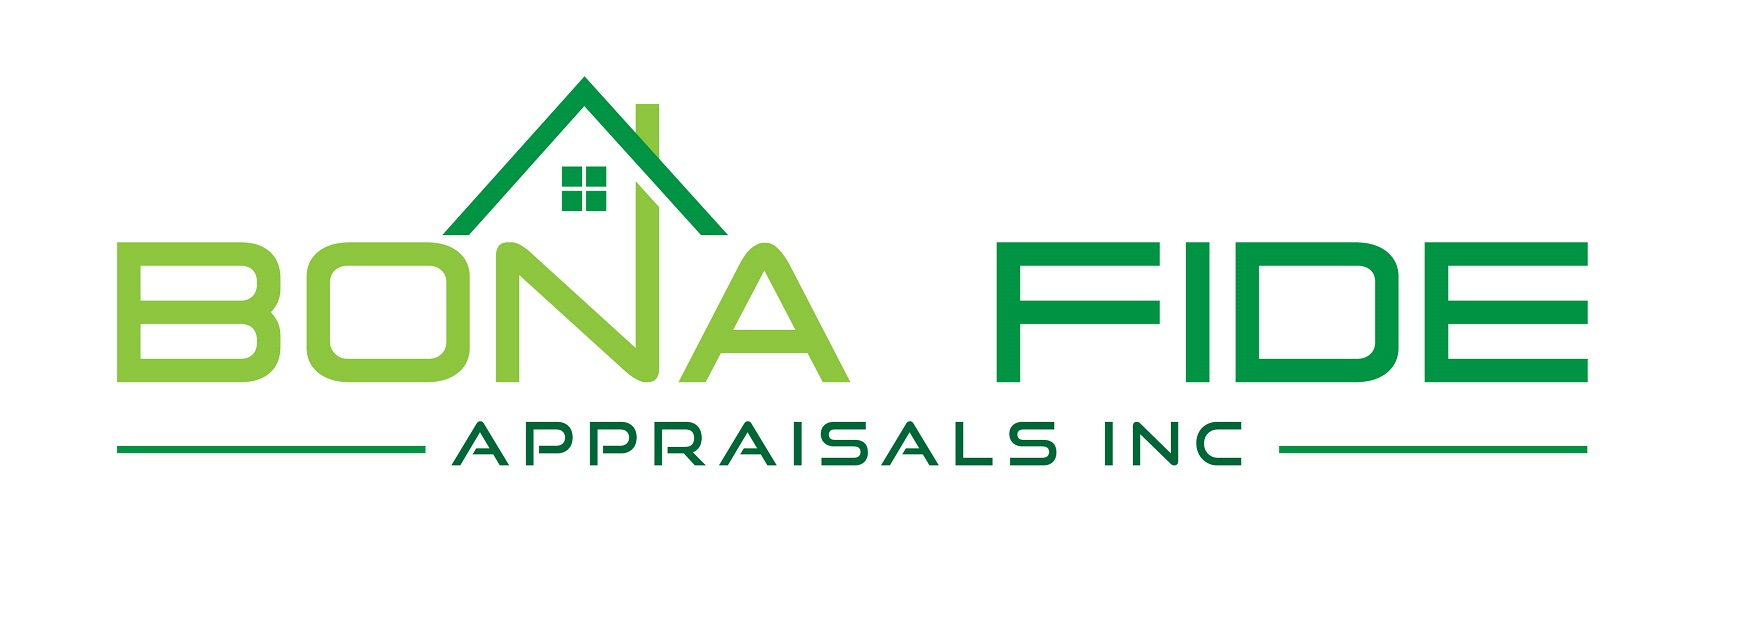 CRA or Experienced Appraisal Candidate